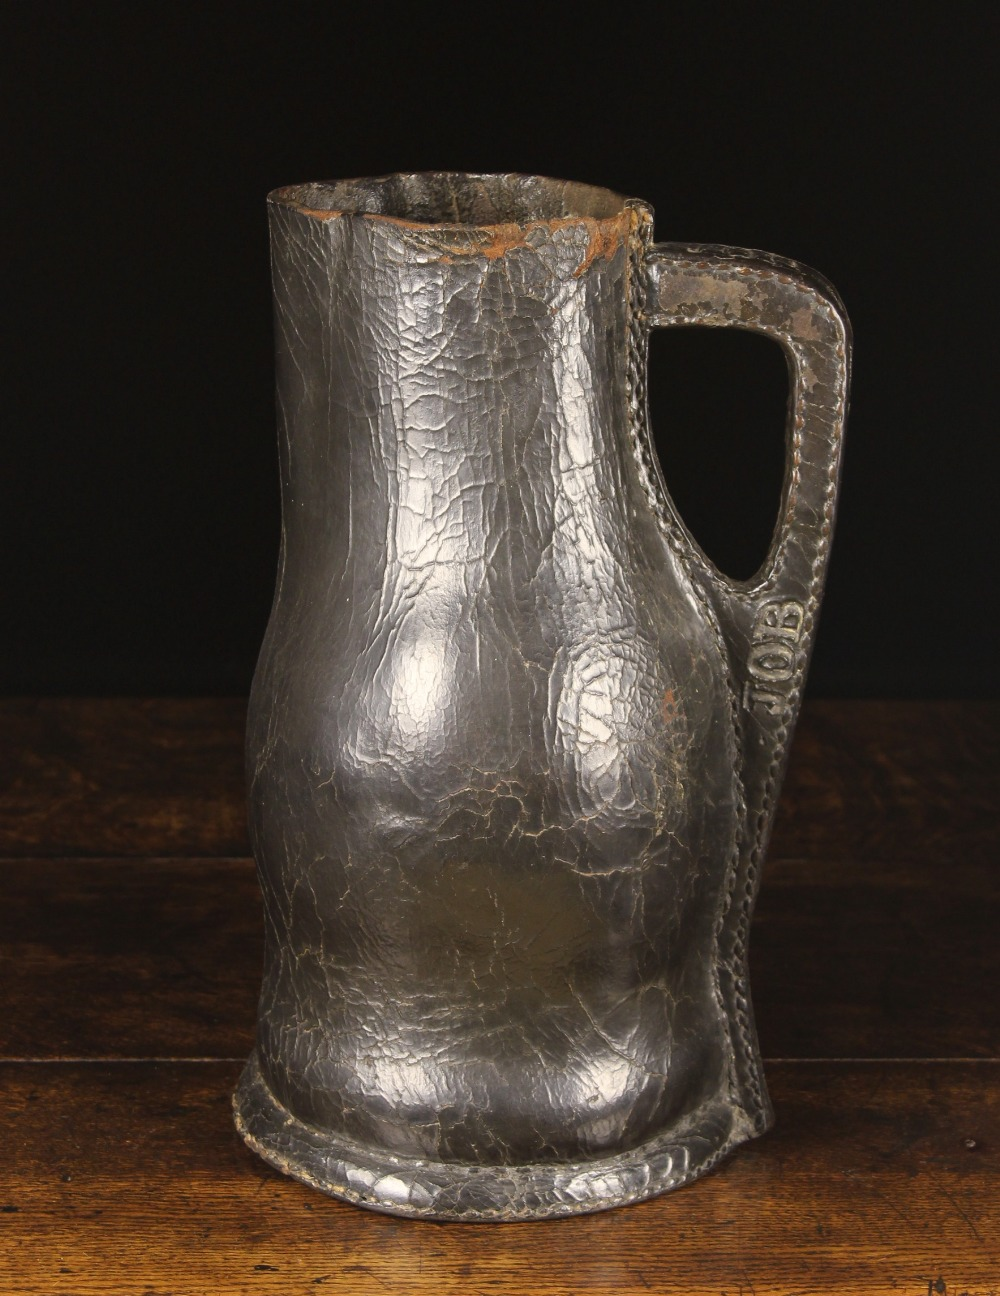 Lot 6 - A Large 17th Century Leather bombard stamped 'JOB' along the stitched handle seam,